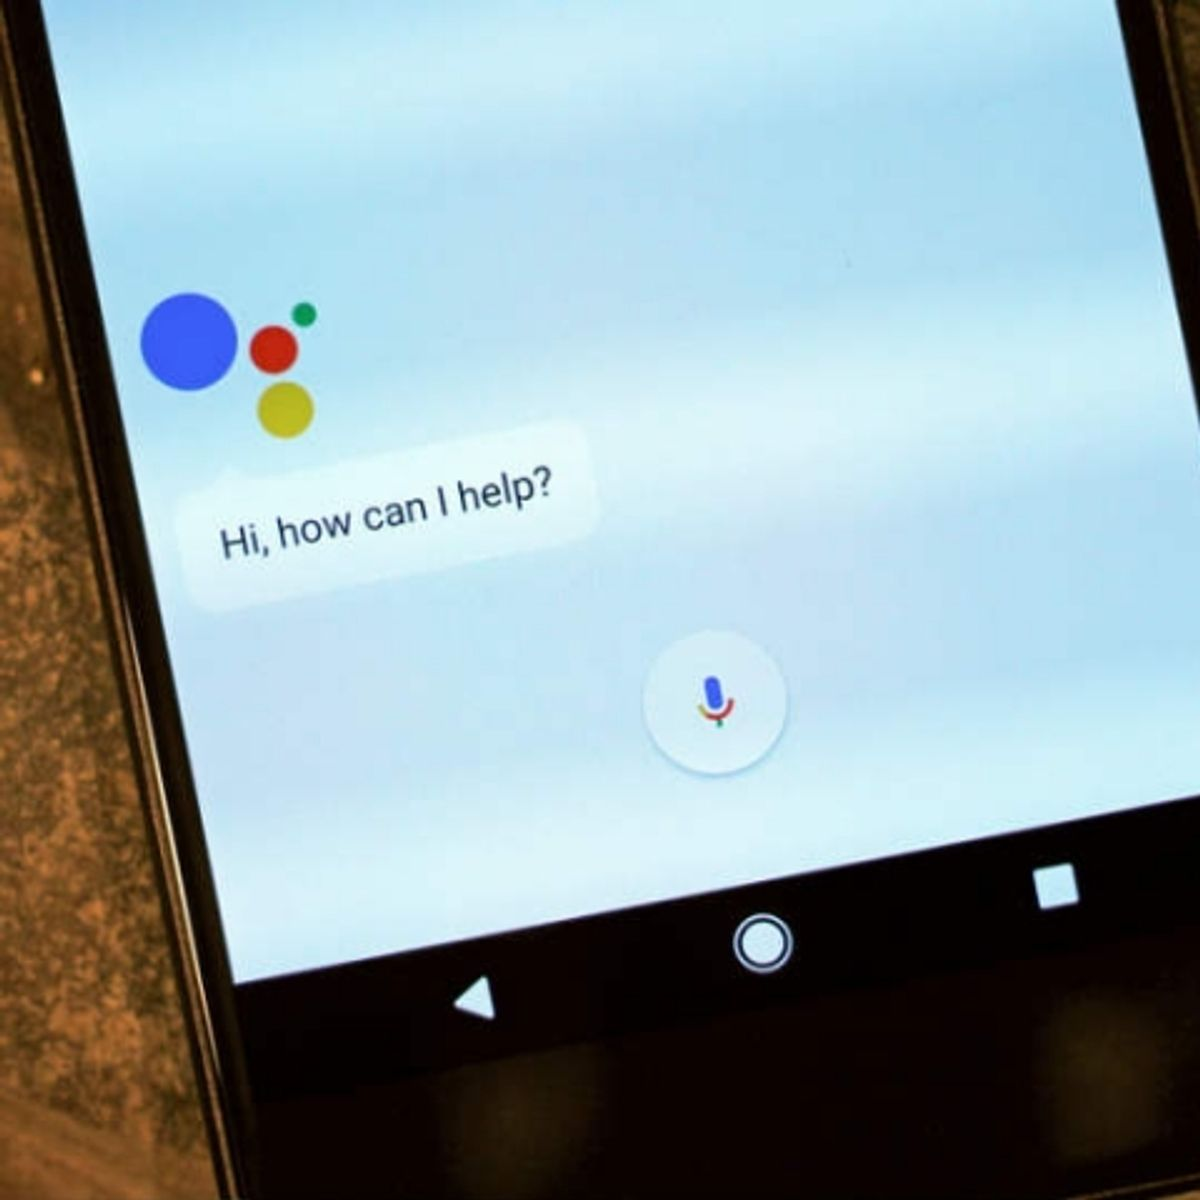 HDFC Bank's chatbot 'Eva' now works with Google Assistant